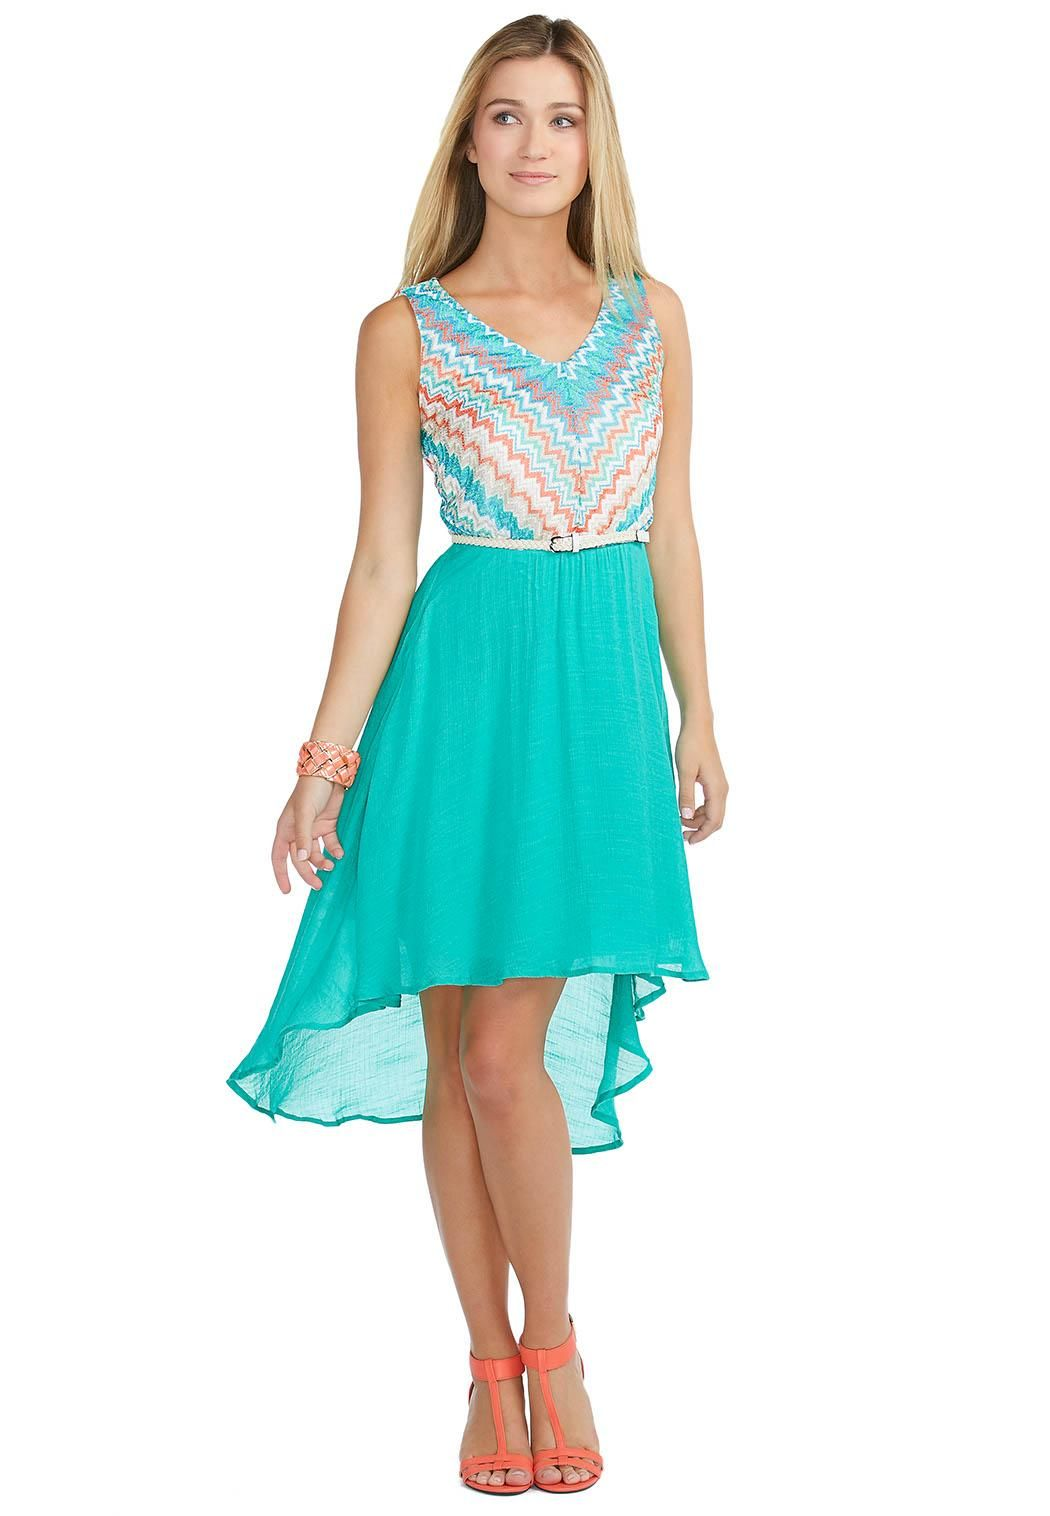 Cato fashions careers - Chevron High Low Belted Dress Career Cato Fashions Catosummerstyle